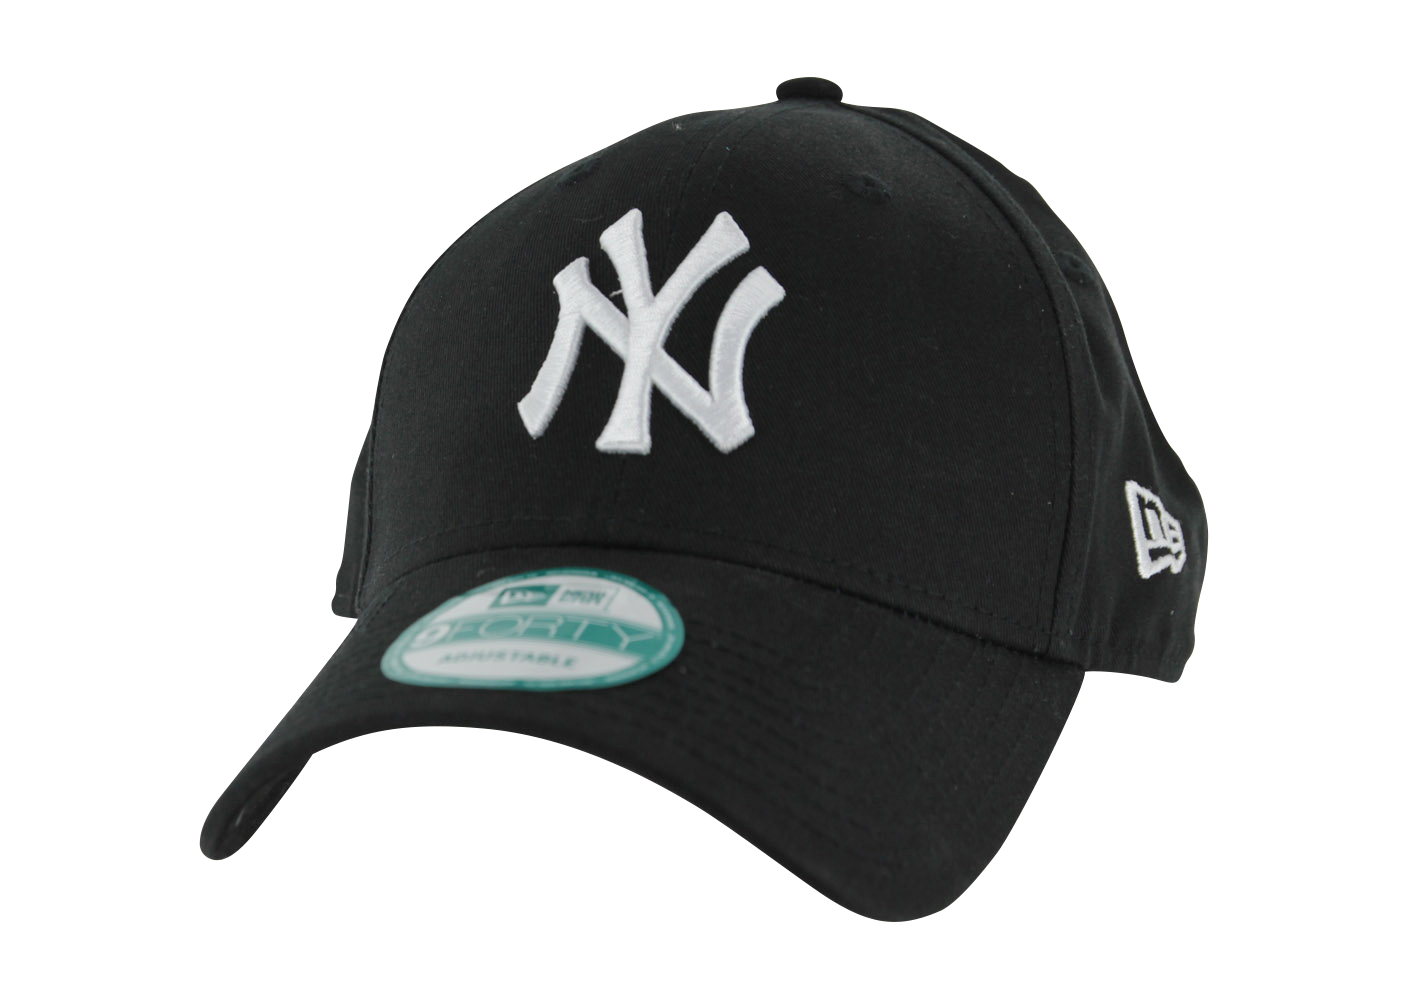 New Era Homme Casquette 9/40 Mlb The League New York Yankees Noir Et Blanc